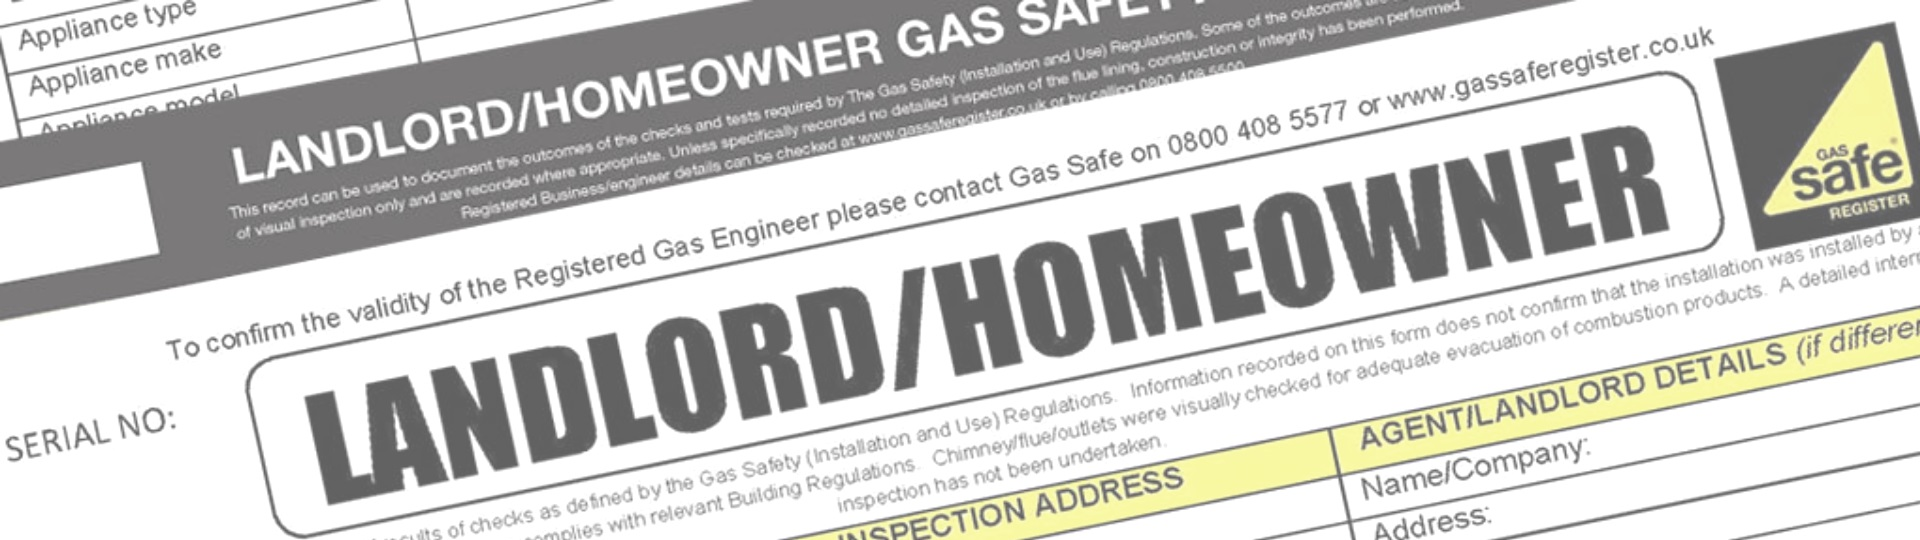 Gas Saftey Certificates Hillfields